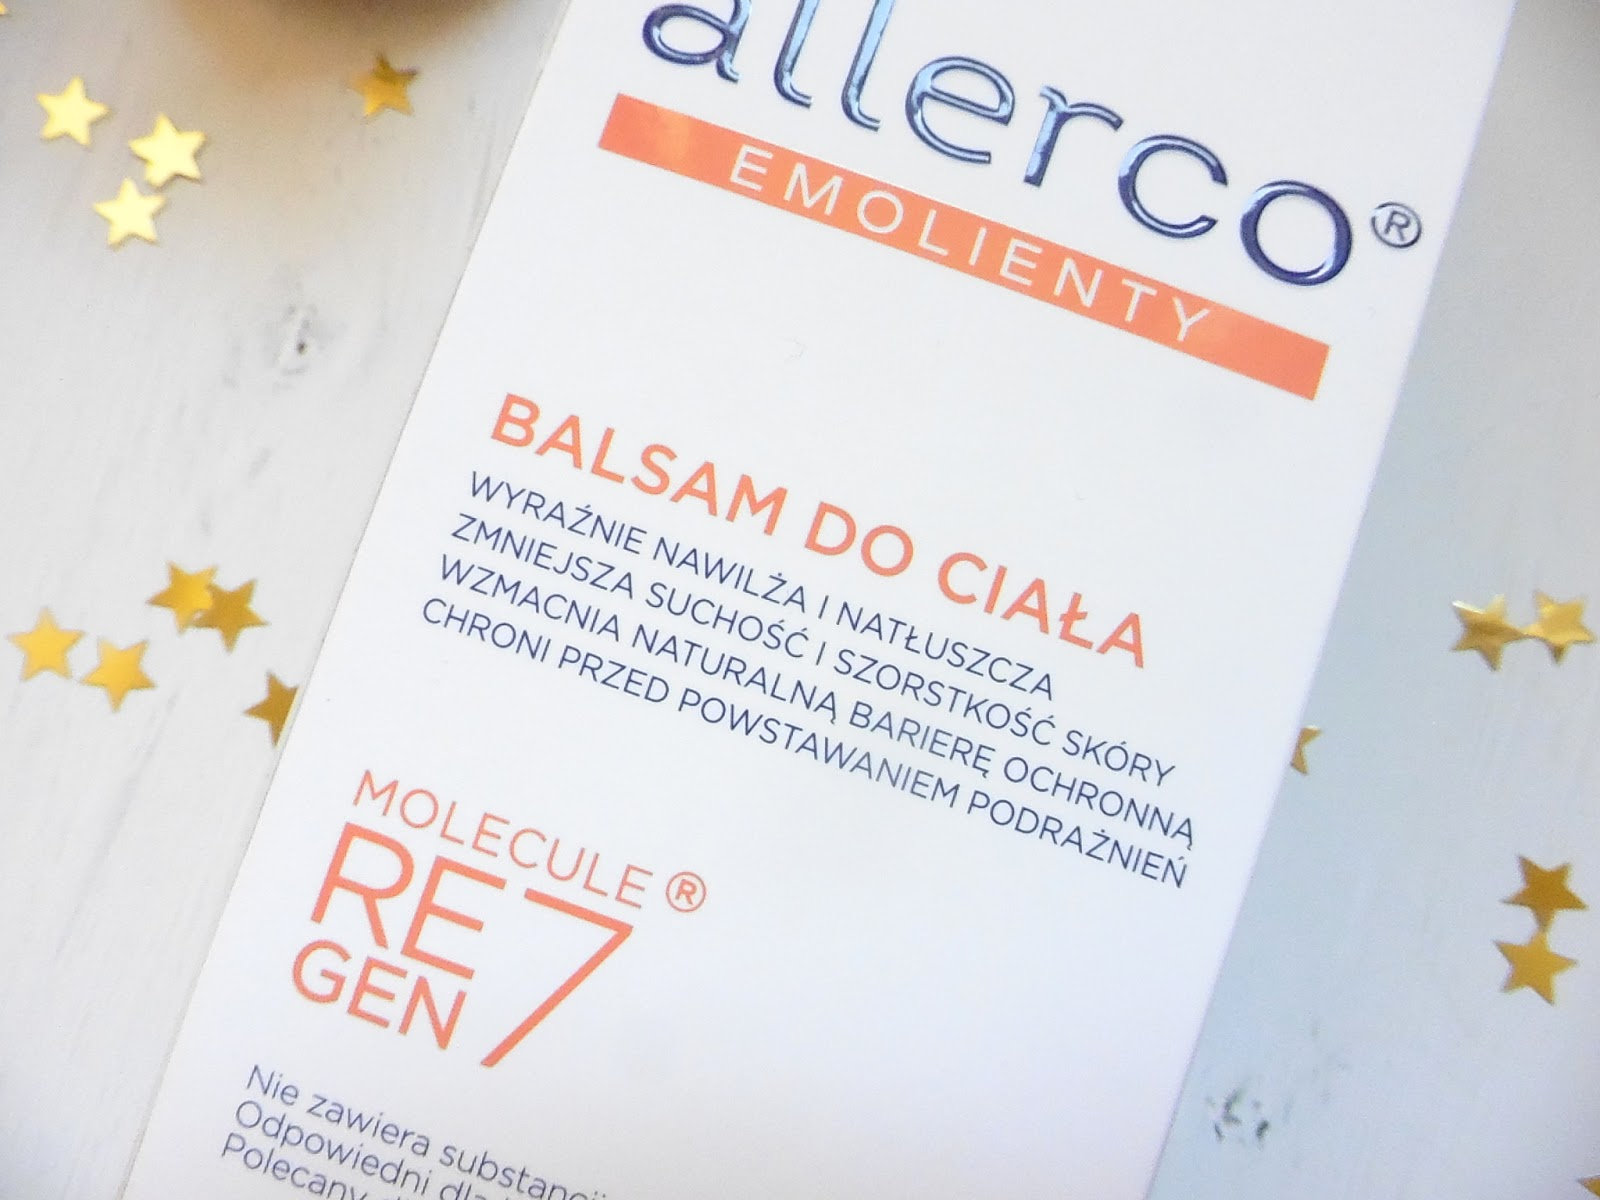 allerco®-balsam-do-ciala, balsam-do-skory-atopowej